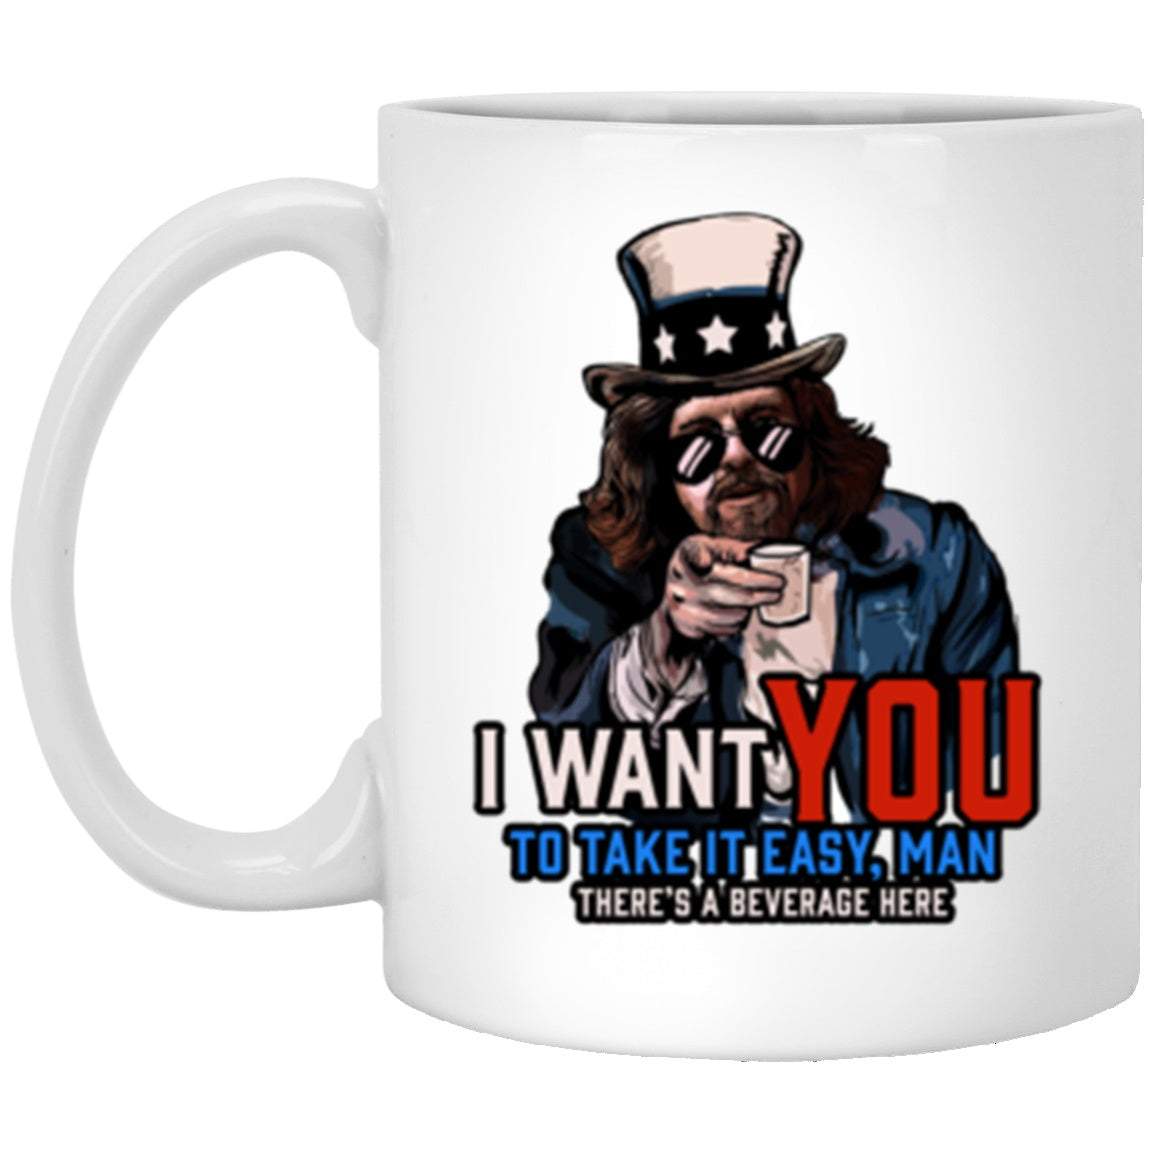 Drinkware - Take It Easy Man White Mug 11oz (2-sided)